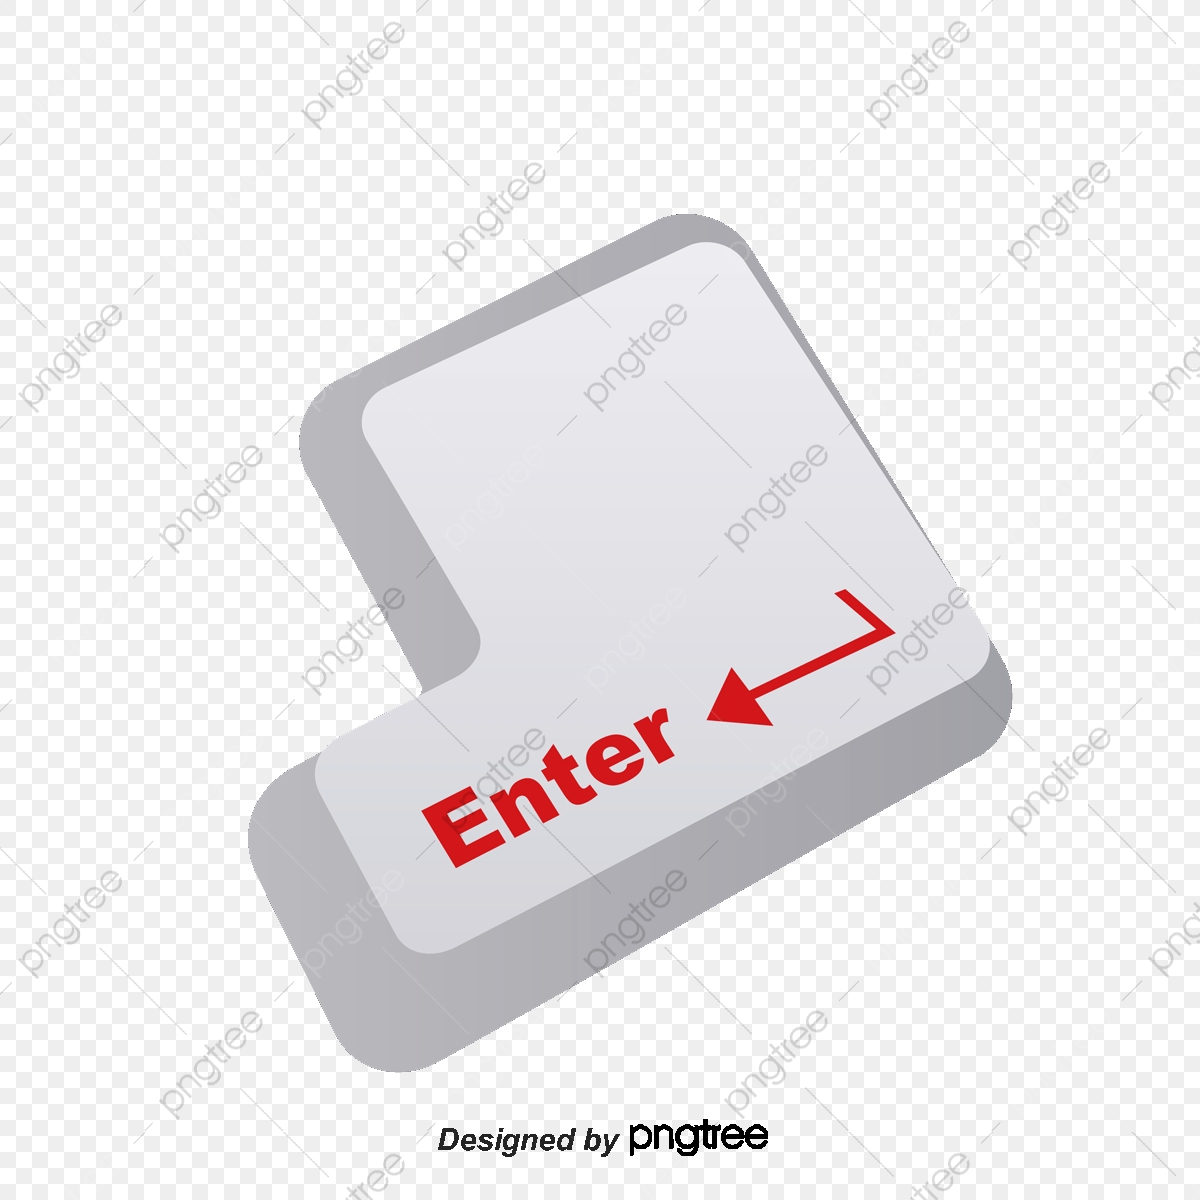 Keyboard Enter Material Keyboard Vector Keyboard White Png Transparent Clipart Image And Psd File For Free Download